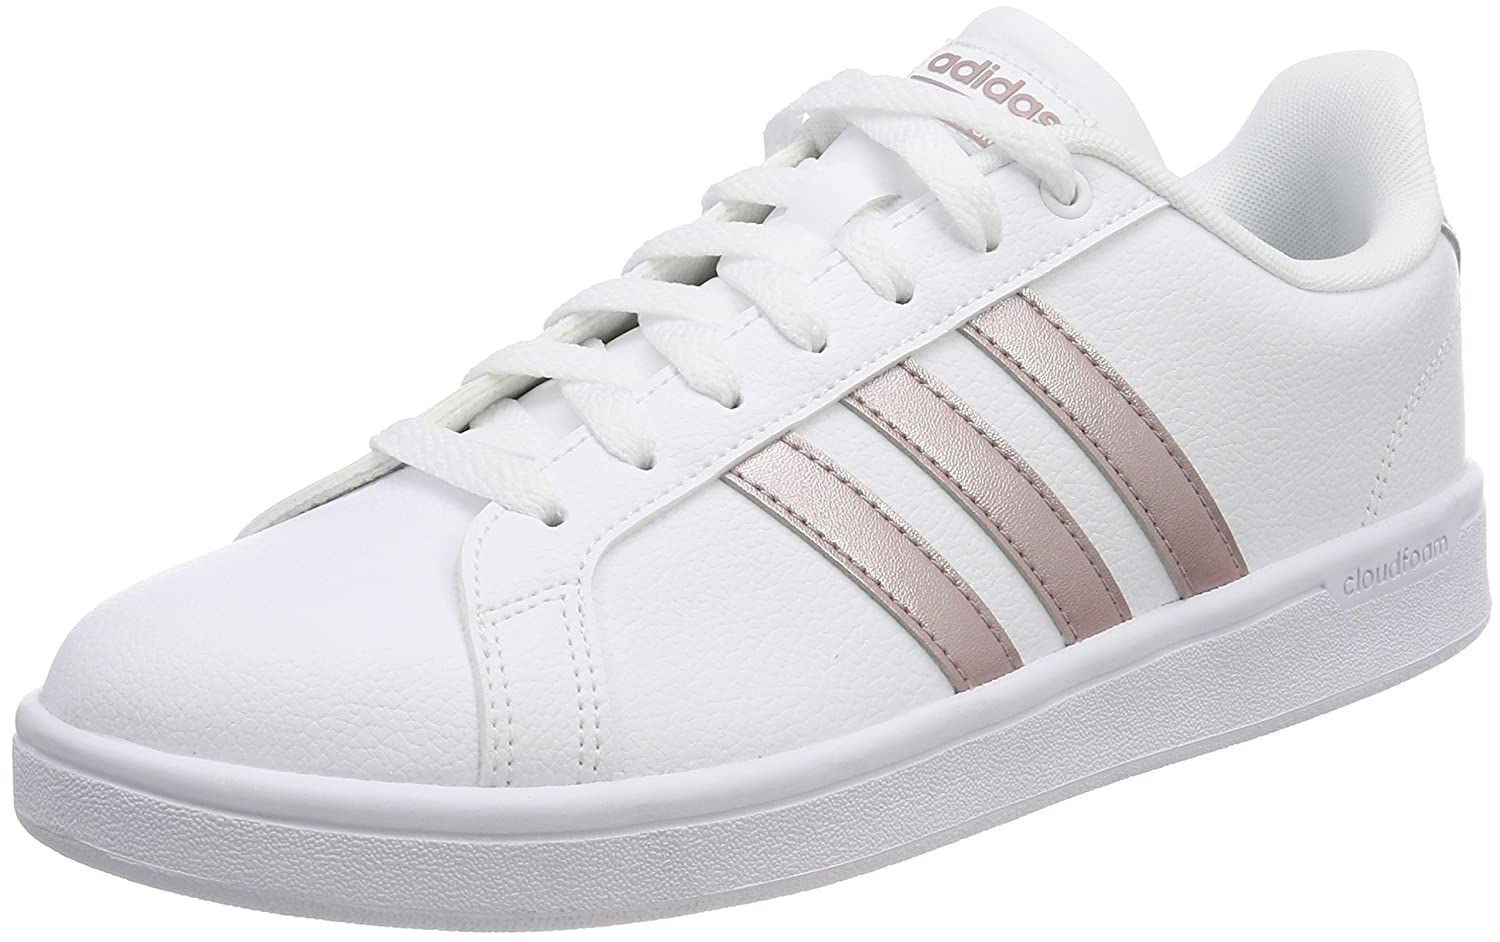 adidas Women's Cloudfoam Advantage Fitness Shoes